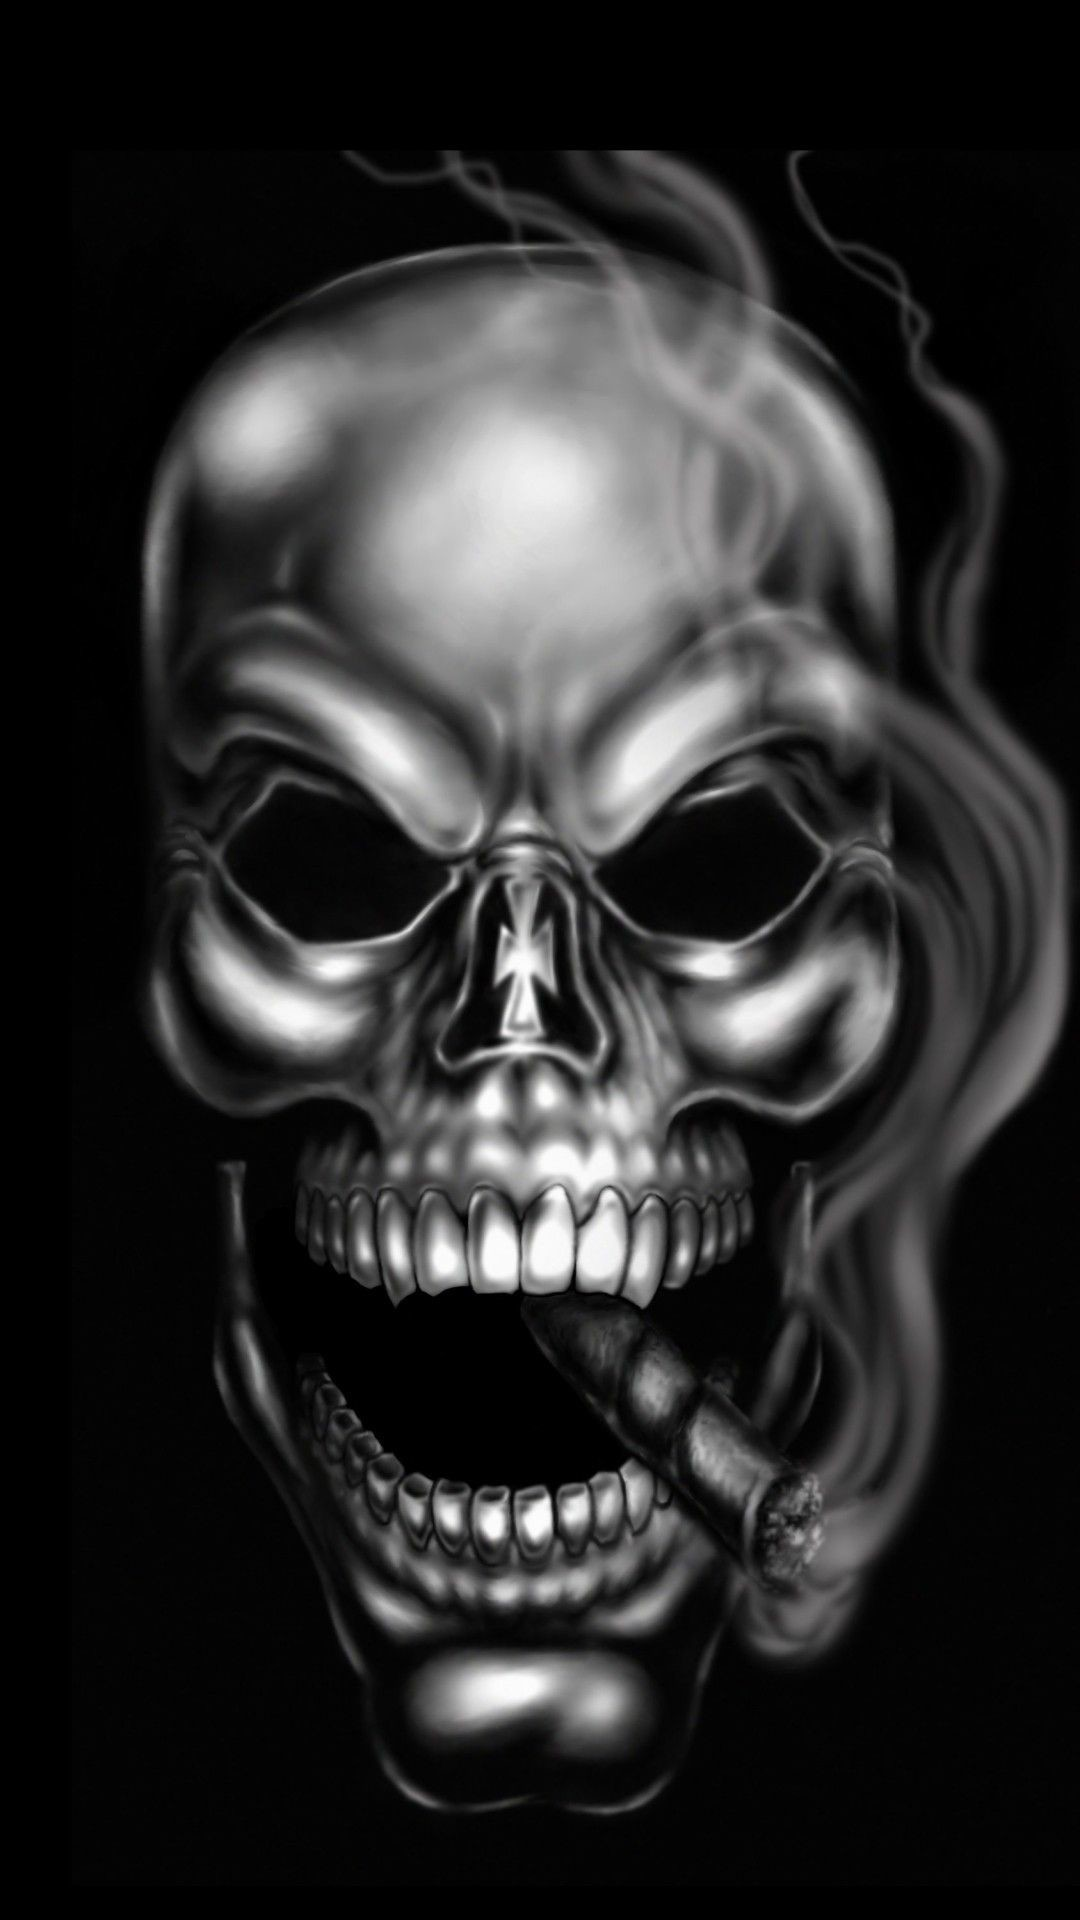 Evil Skull Wallpapers Hd Wallpaper Collections 4kwallpaper Wiki